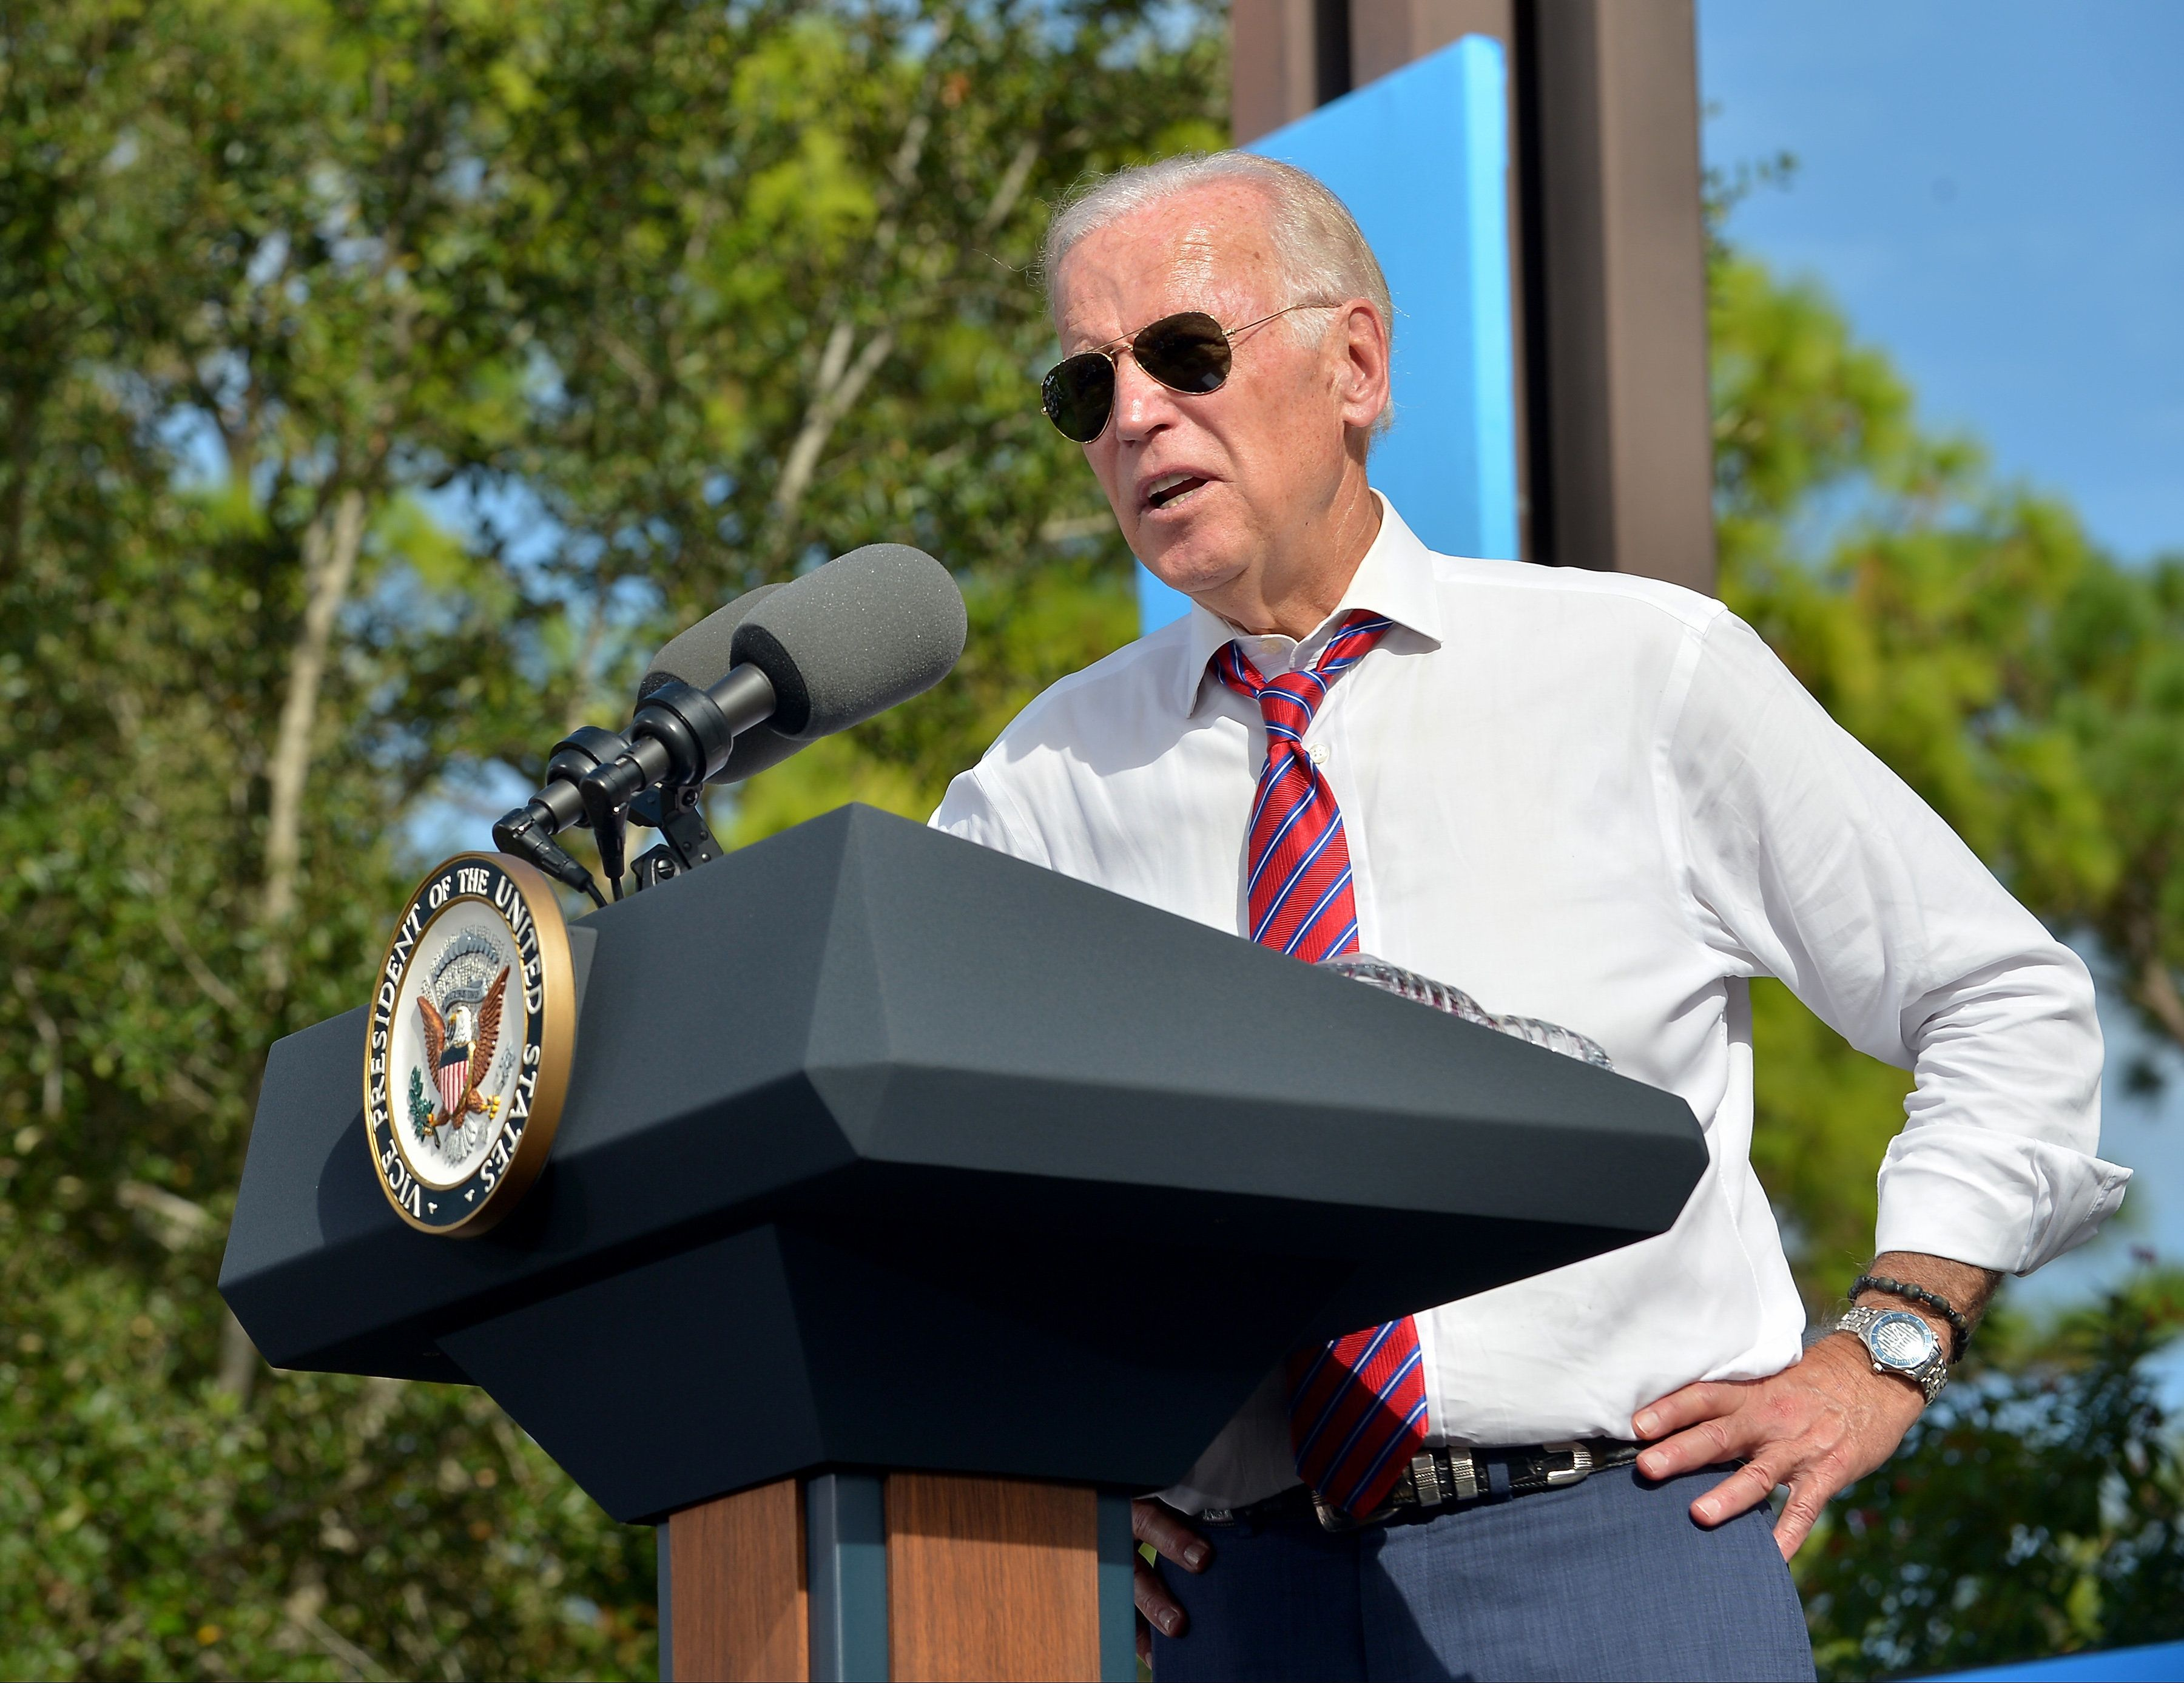 PALM BEACH GARDENS, FL - NOVEMBER 02:  Vice President Joe Biden speak to supporters during a public campaign rally for 'Get Out The Early Vote' for Democratic presidential nominee Hillary Clinton at Palm Beach State College-Amphitheater (Center of Campus) on November 2, 2016 in Palm Beach Gardens, Florida. Vice President Biden will urge Floridians to take advantage of early voting right away with six day left for election.  (Photo by Johnny Louis/FilmMagic,)